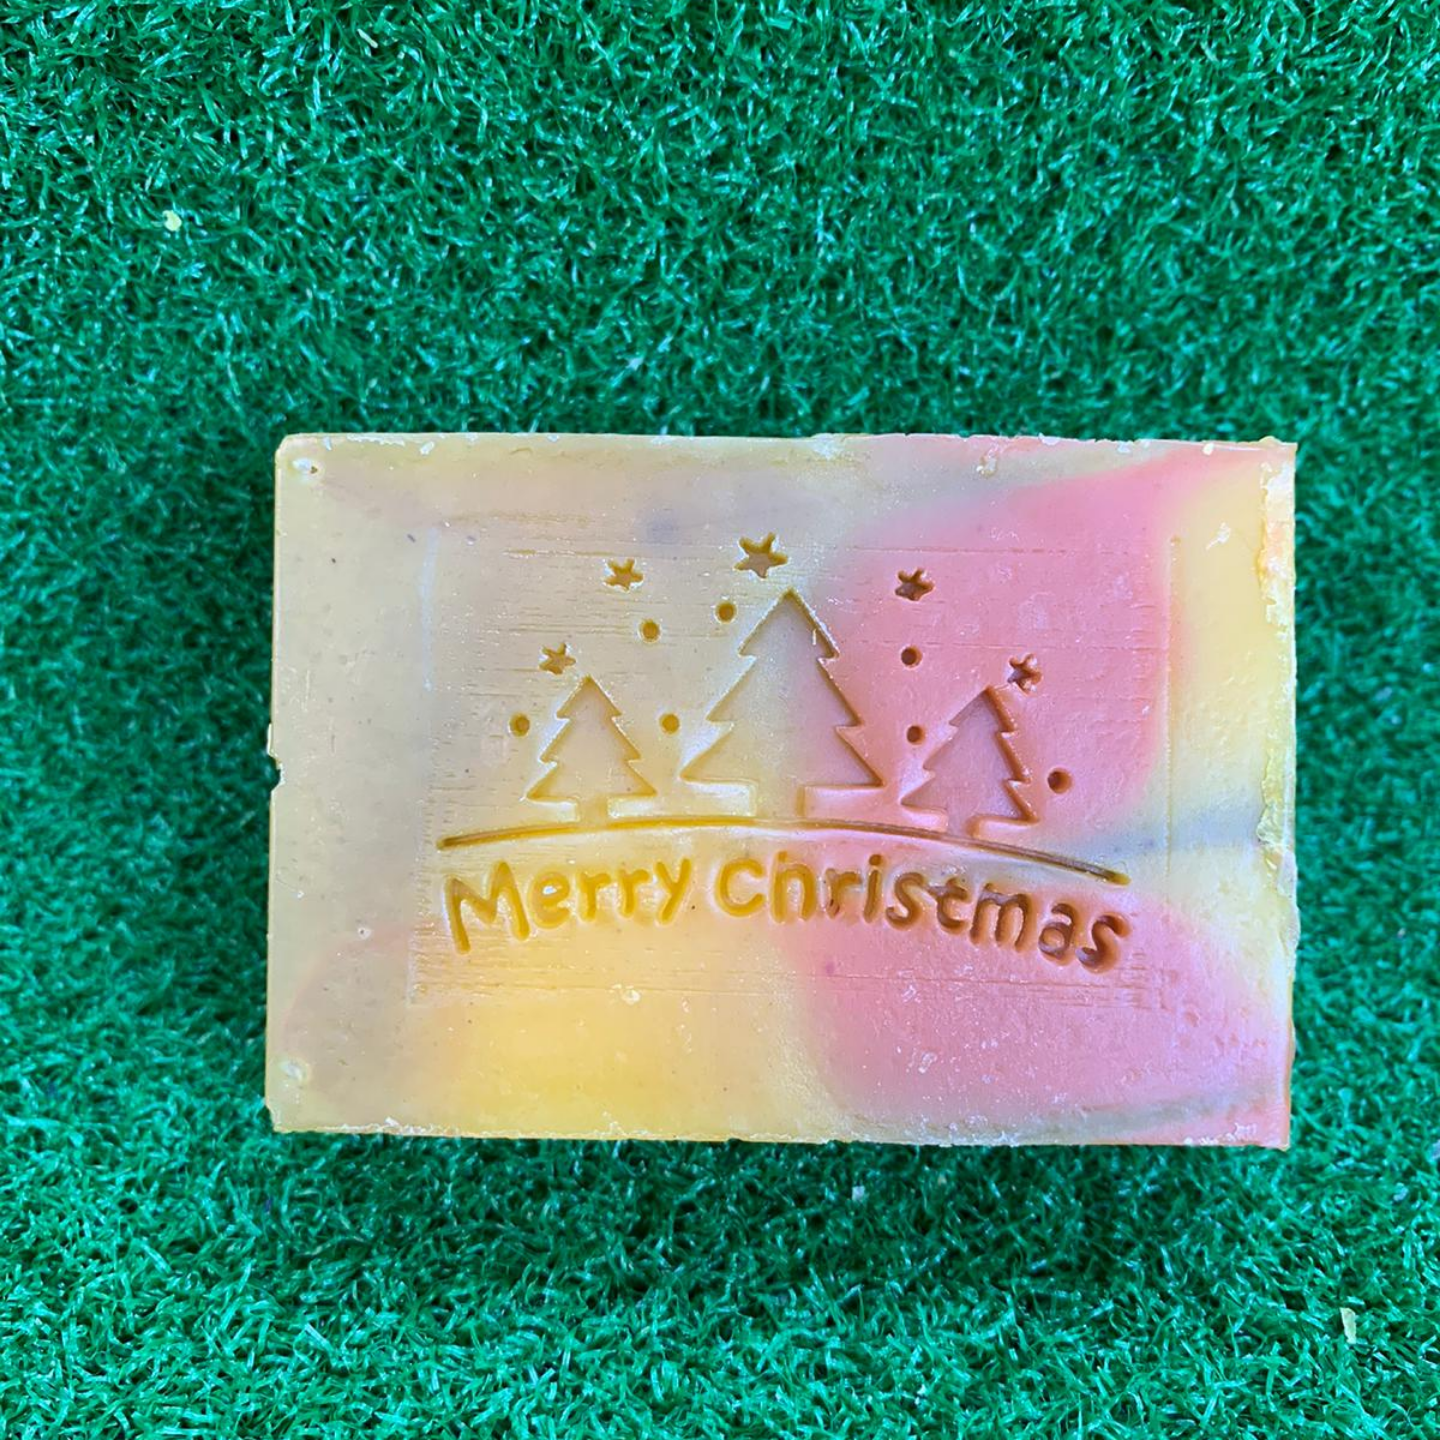 Merry Christmas Trees and Stars Acrylic Soap Stamp